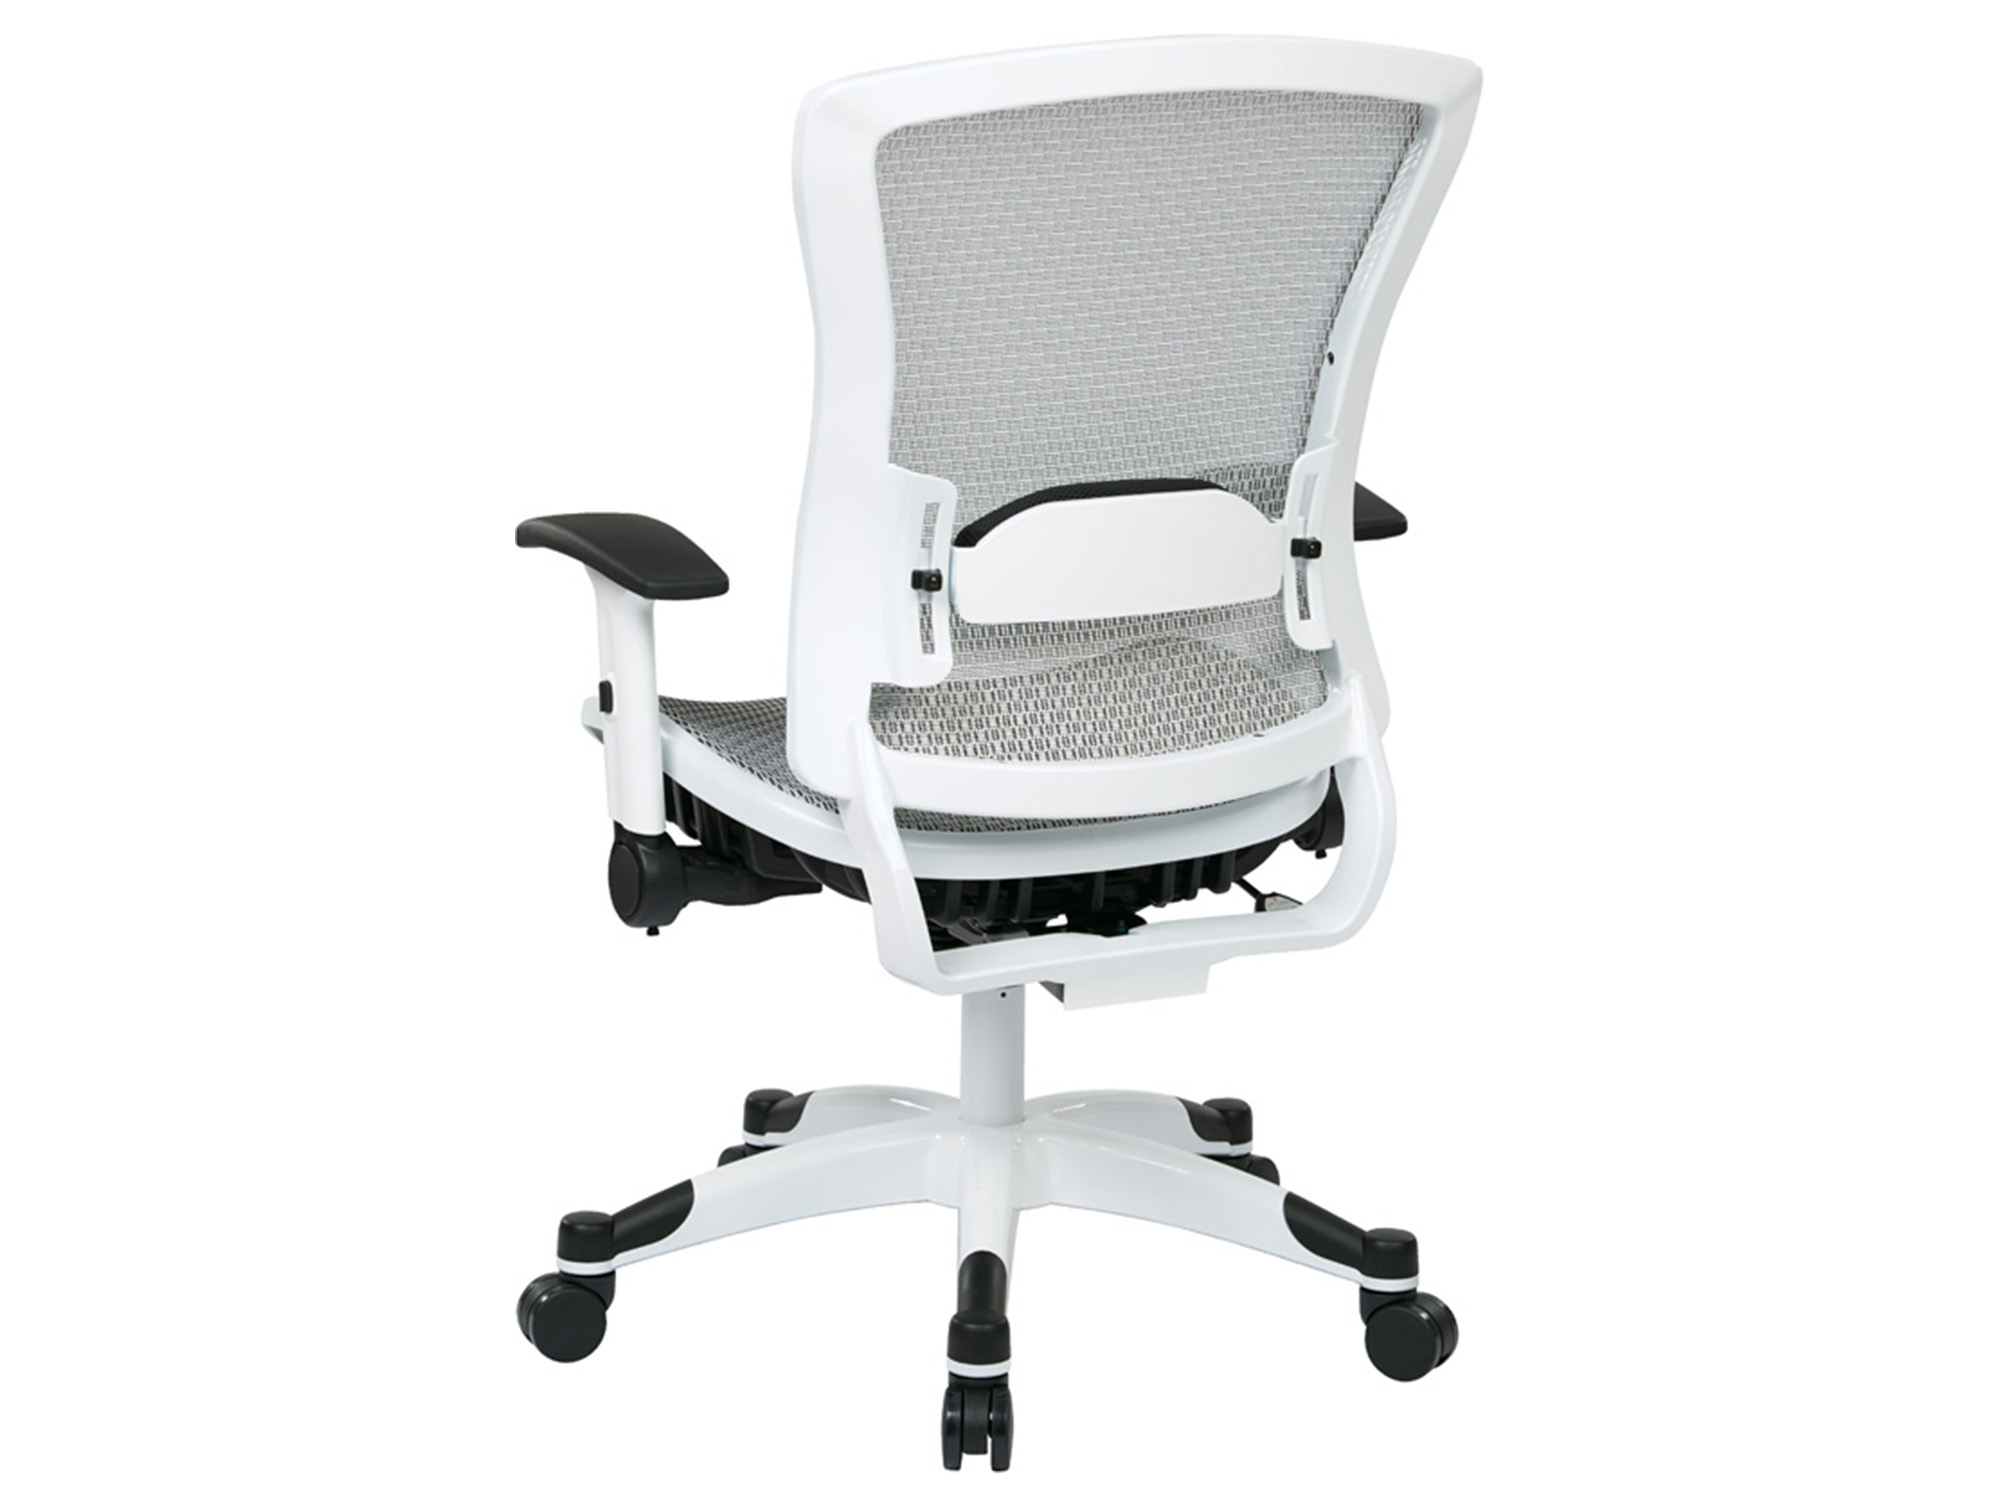 ergonomic chair angle hanging canopy seating office task chairs for